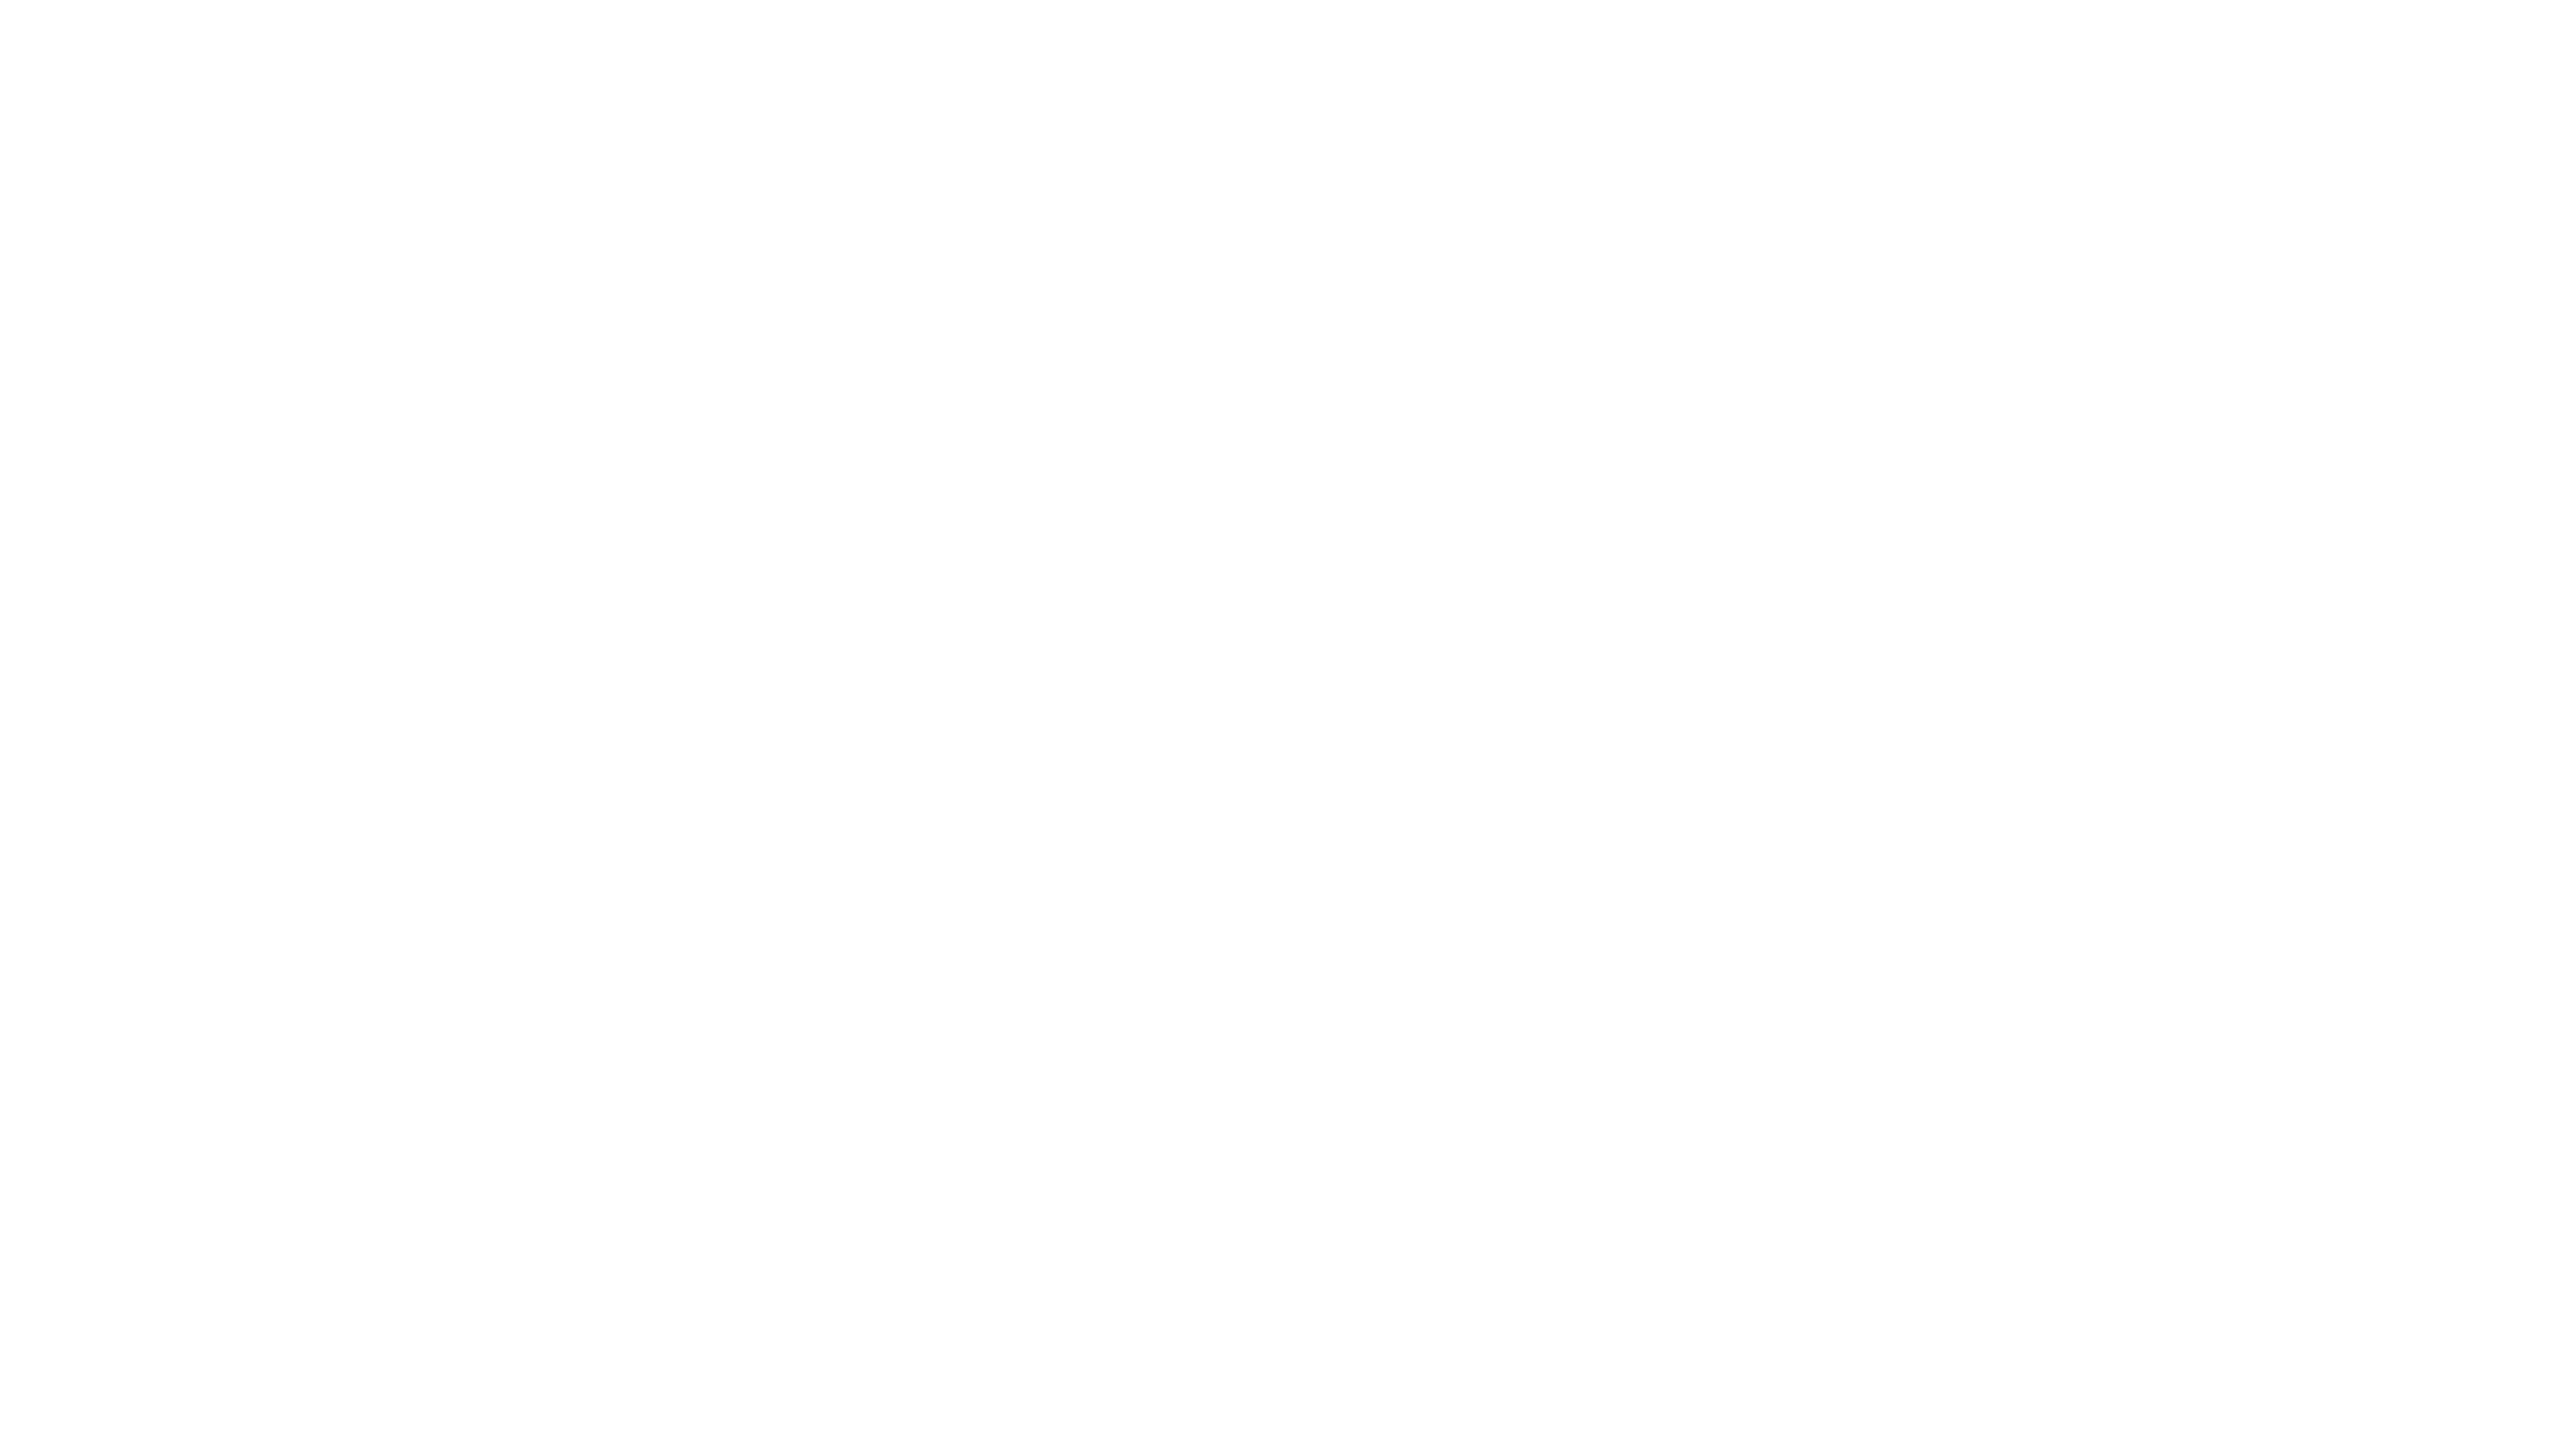 Text Reading 'The Road Home'